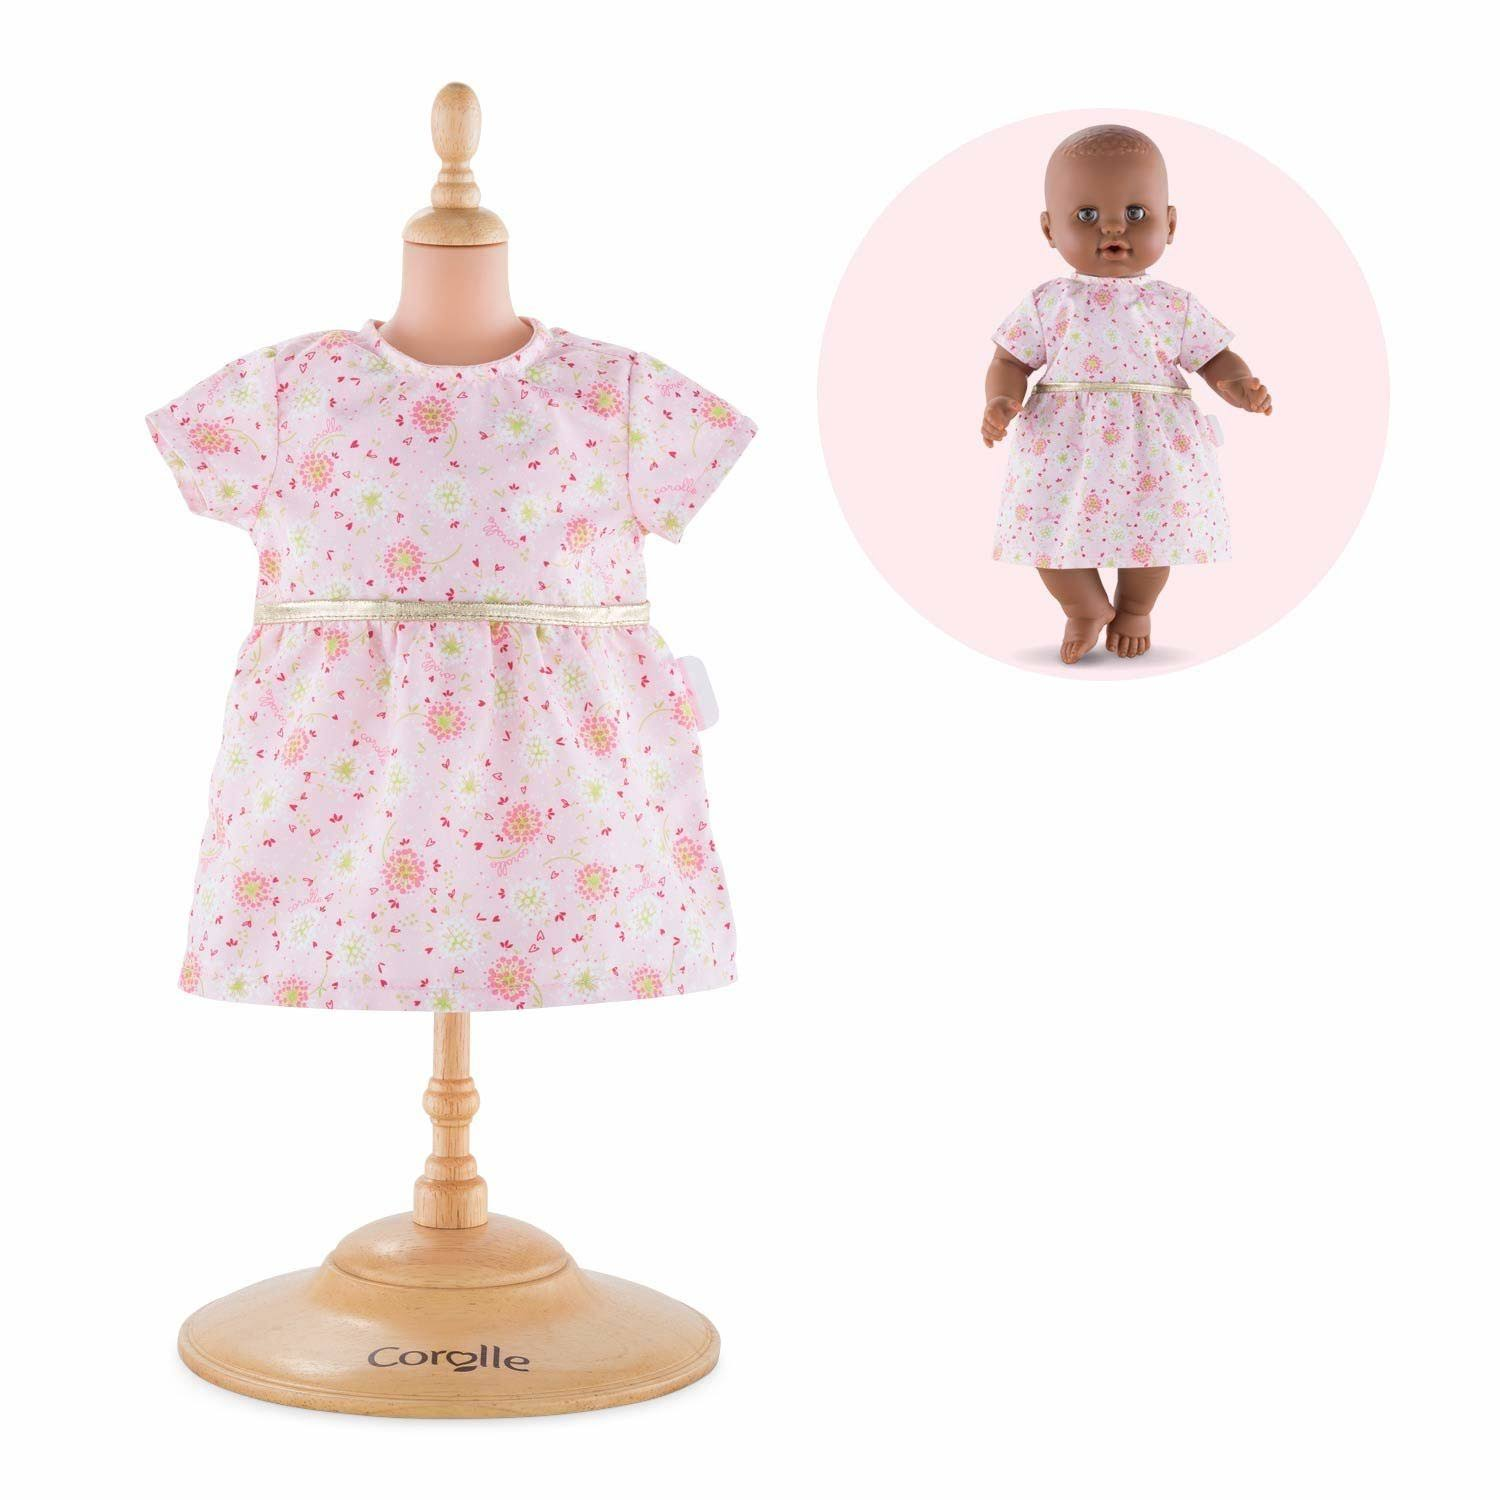 "Corolle Mon Grand Poupon Baby Doll Dress Toy - 14"", Pink"